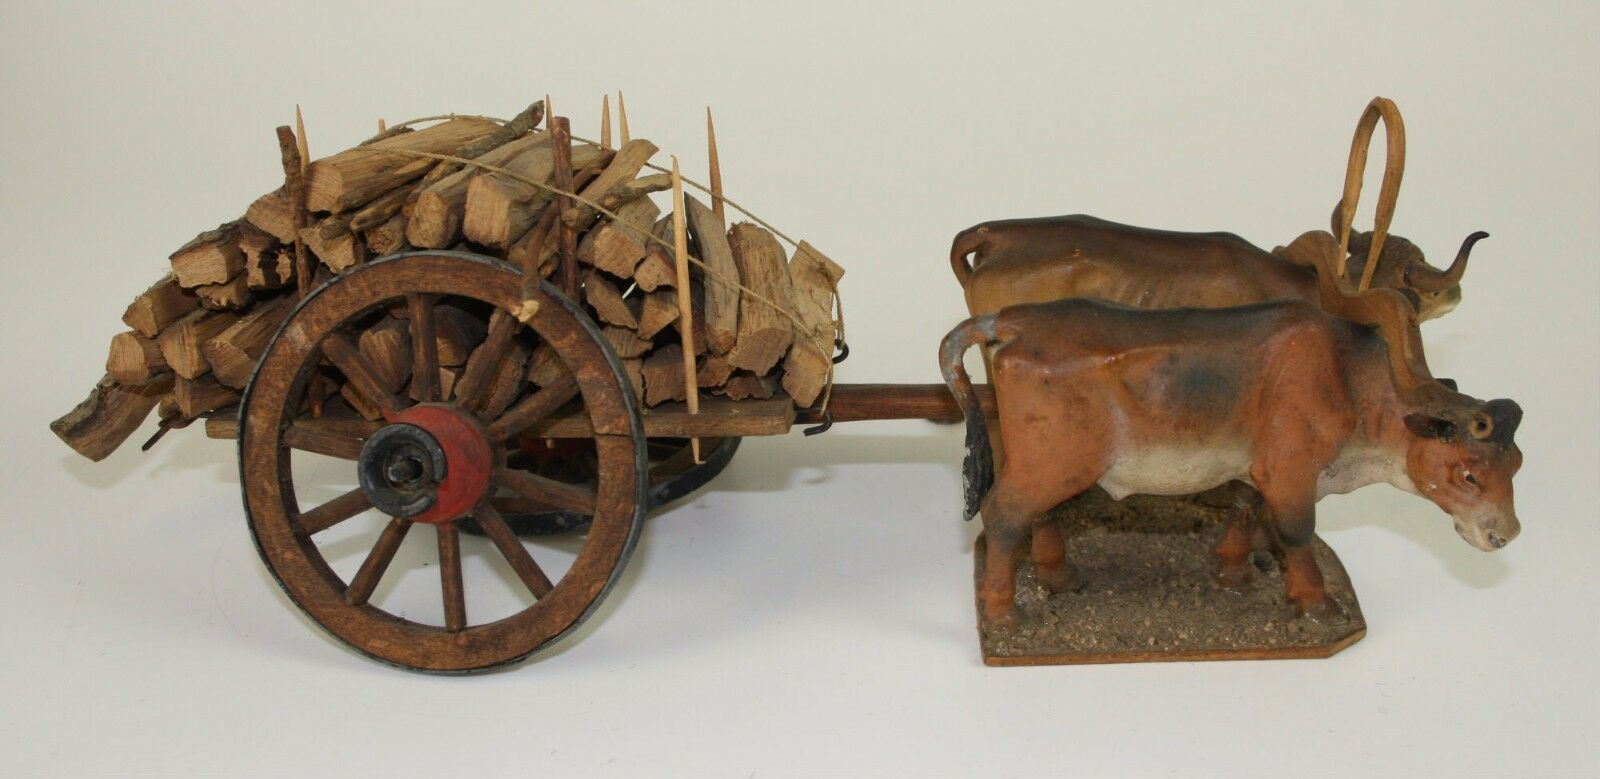 FIREWOOD CART PULLED BY OXEN - WOOD WOOD WOOD AND TERRACOTTA - 19TH CENTURY - 565  b49